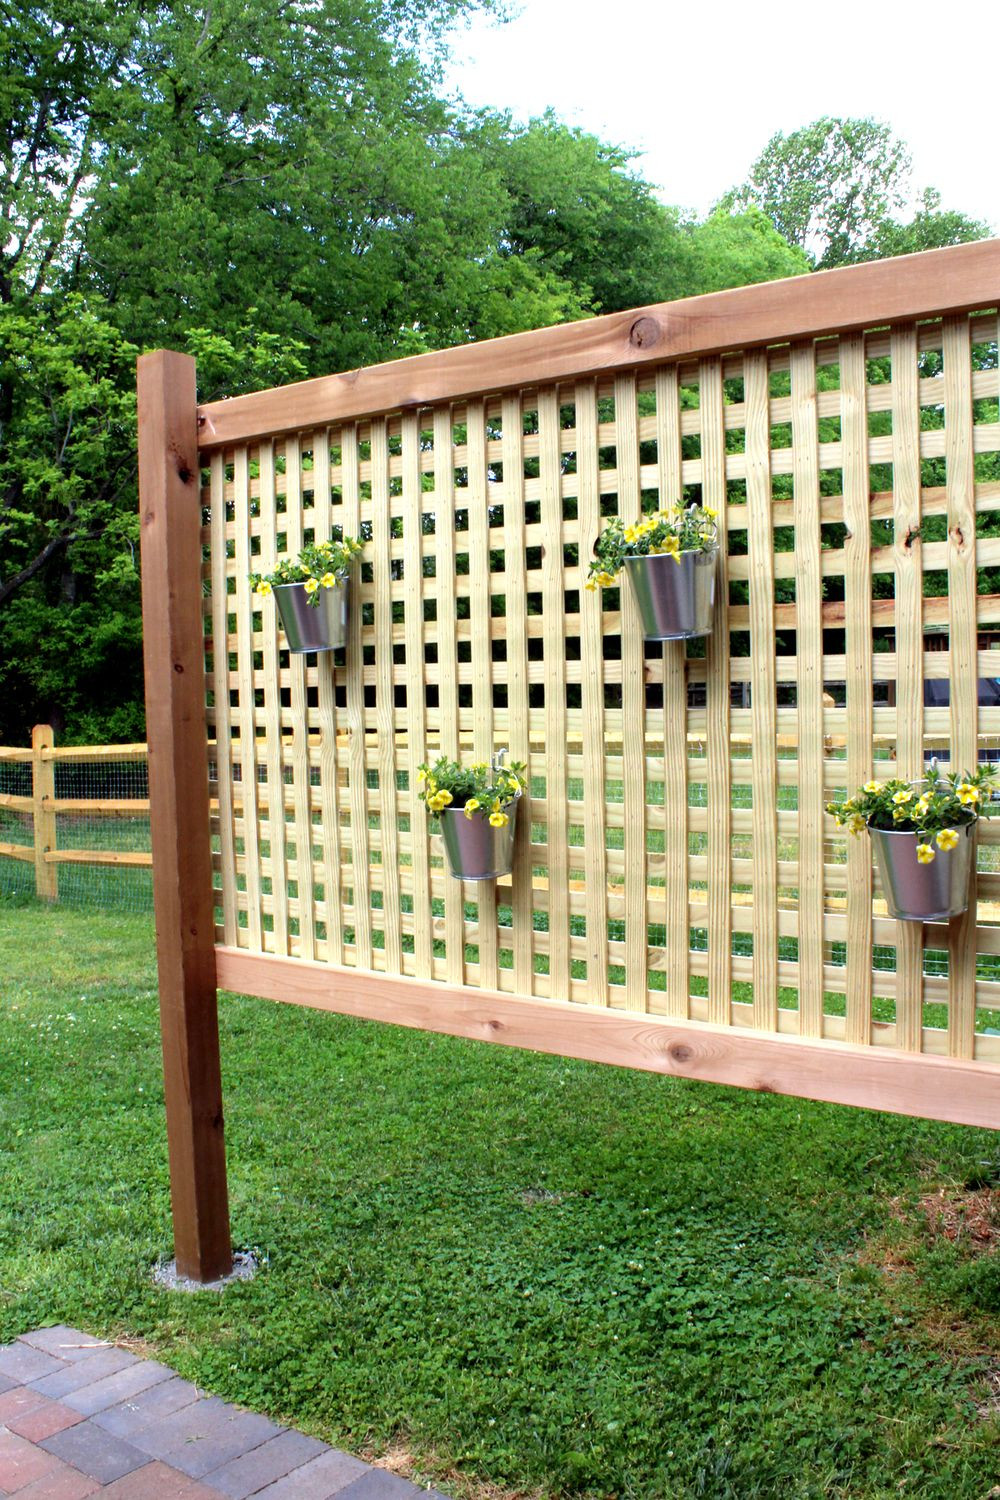 Best ideas about DIY Privacy Screen . Save or Pin Wood Patio Privacy Screen DIY Now.